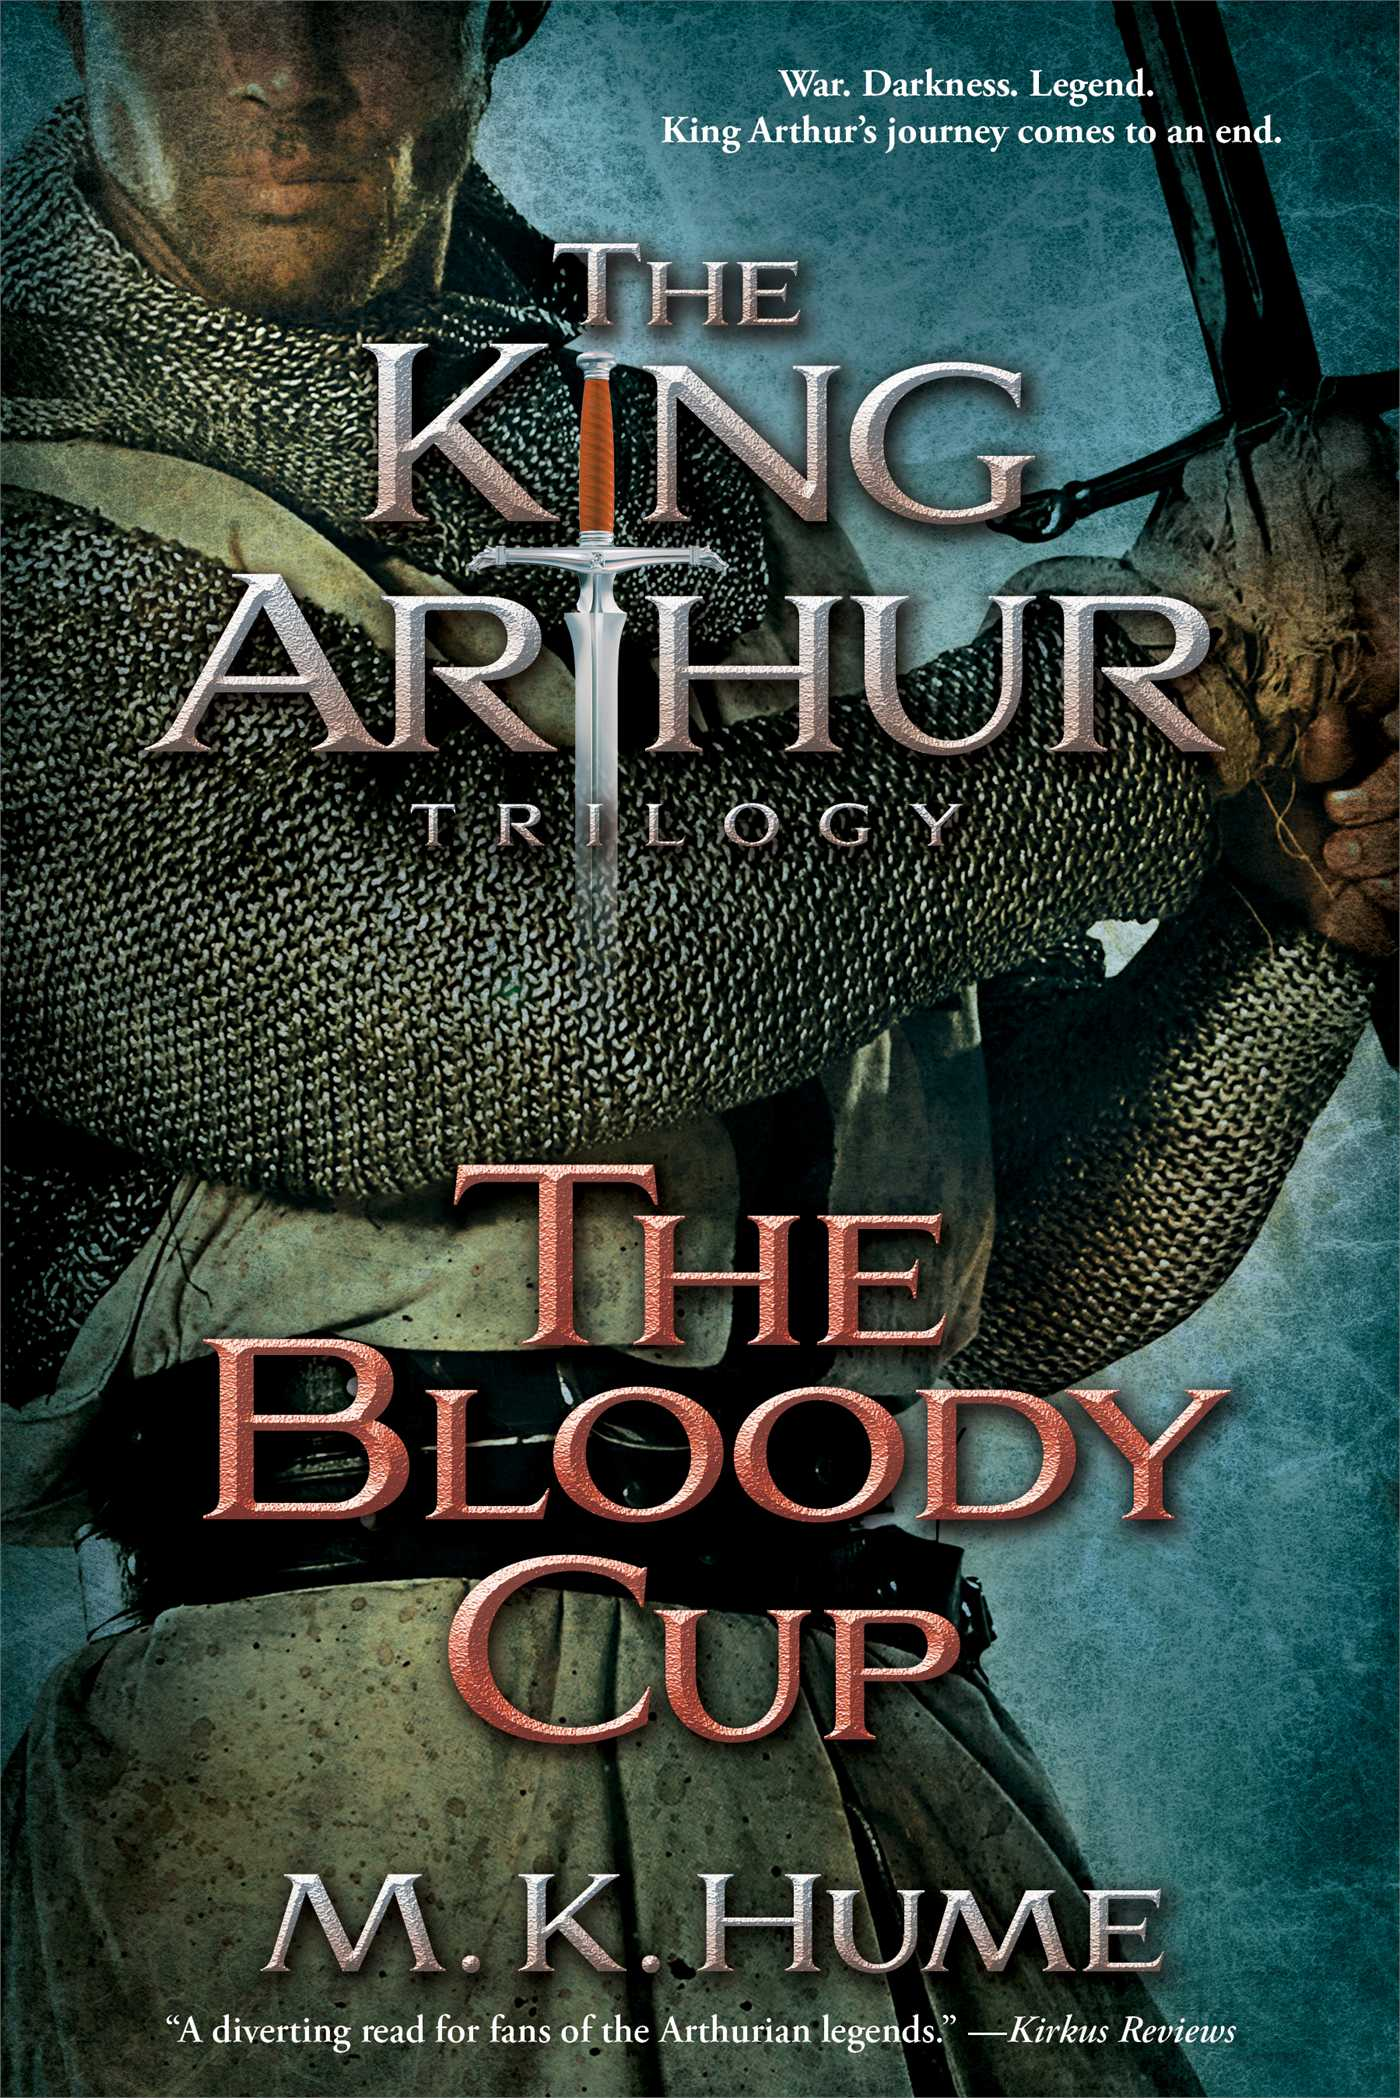 King-arthur-trilogy-book-three-the-bloody-cup-9781476715223_hr